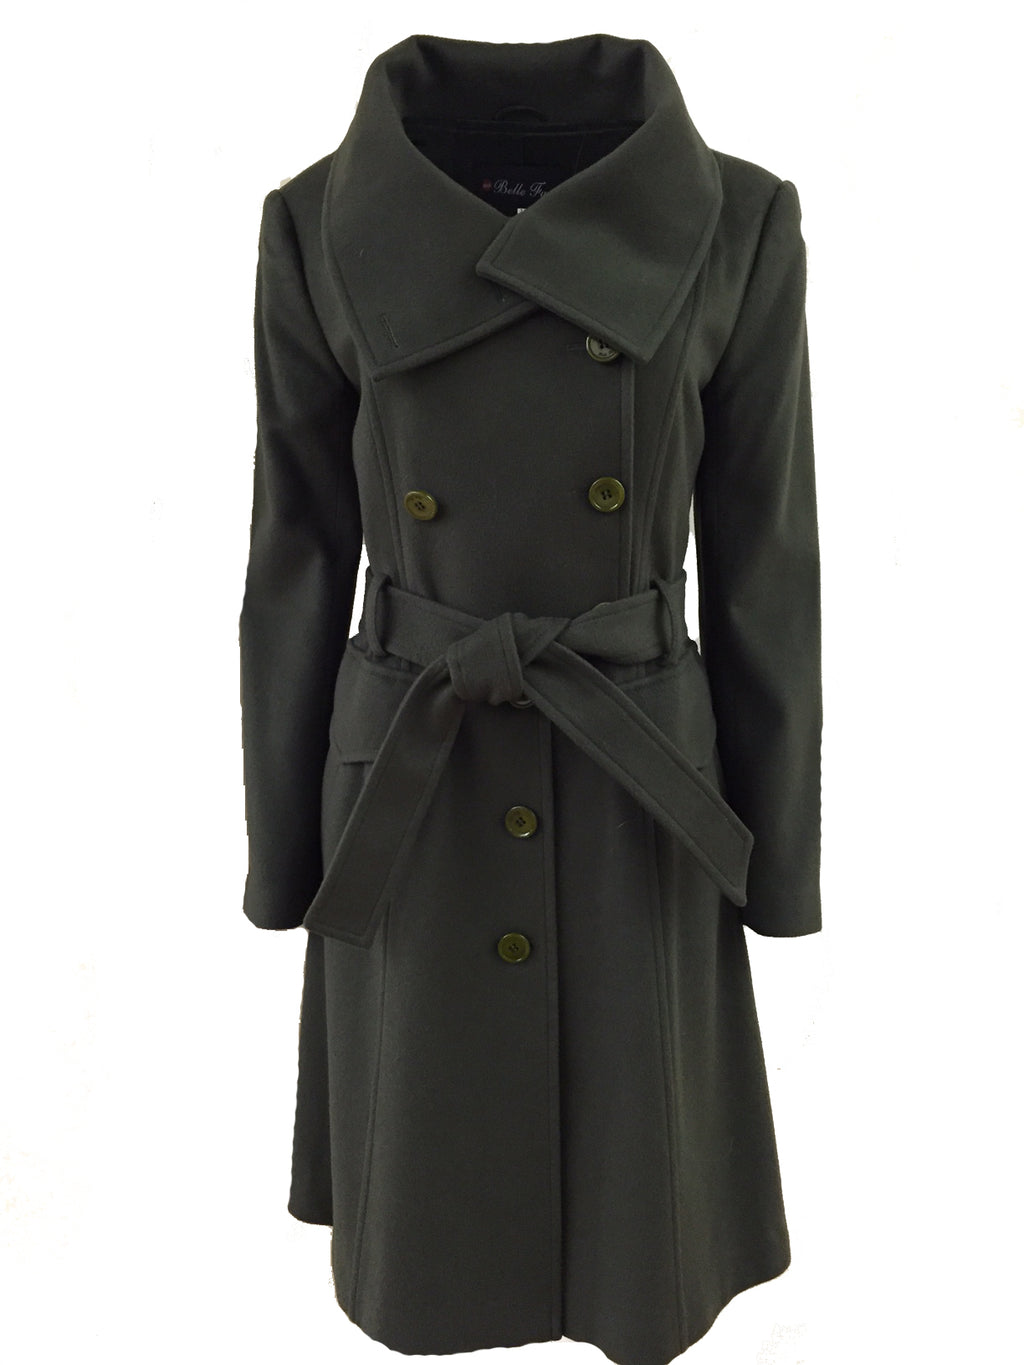 "31"" 100% Cashmere Military Style Coat - Size Medium"